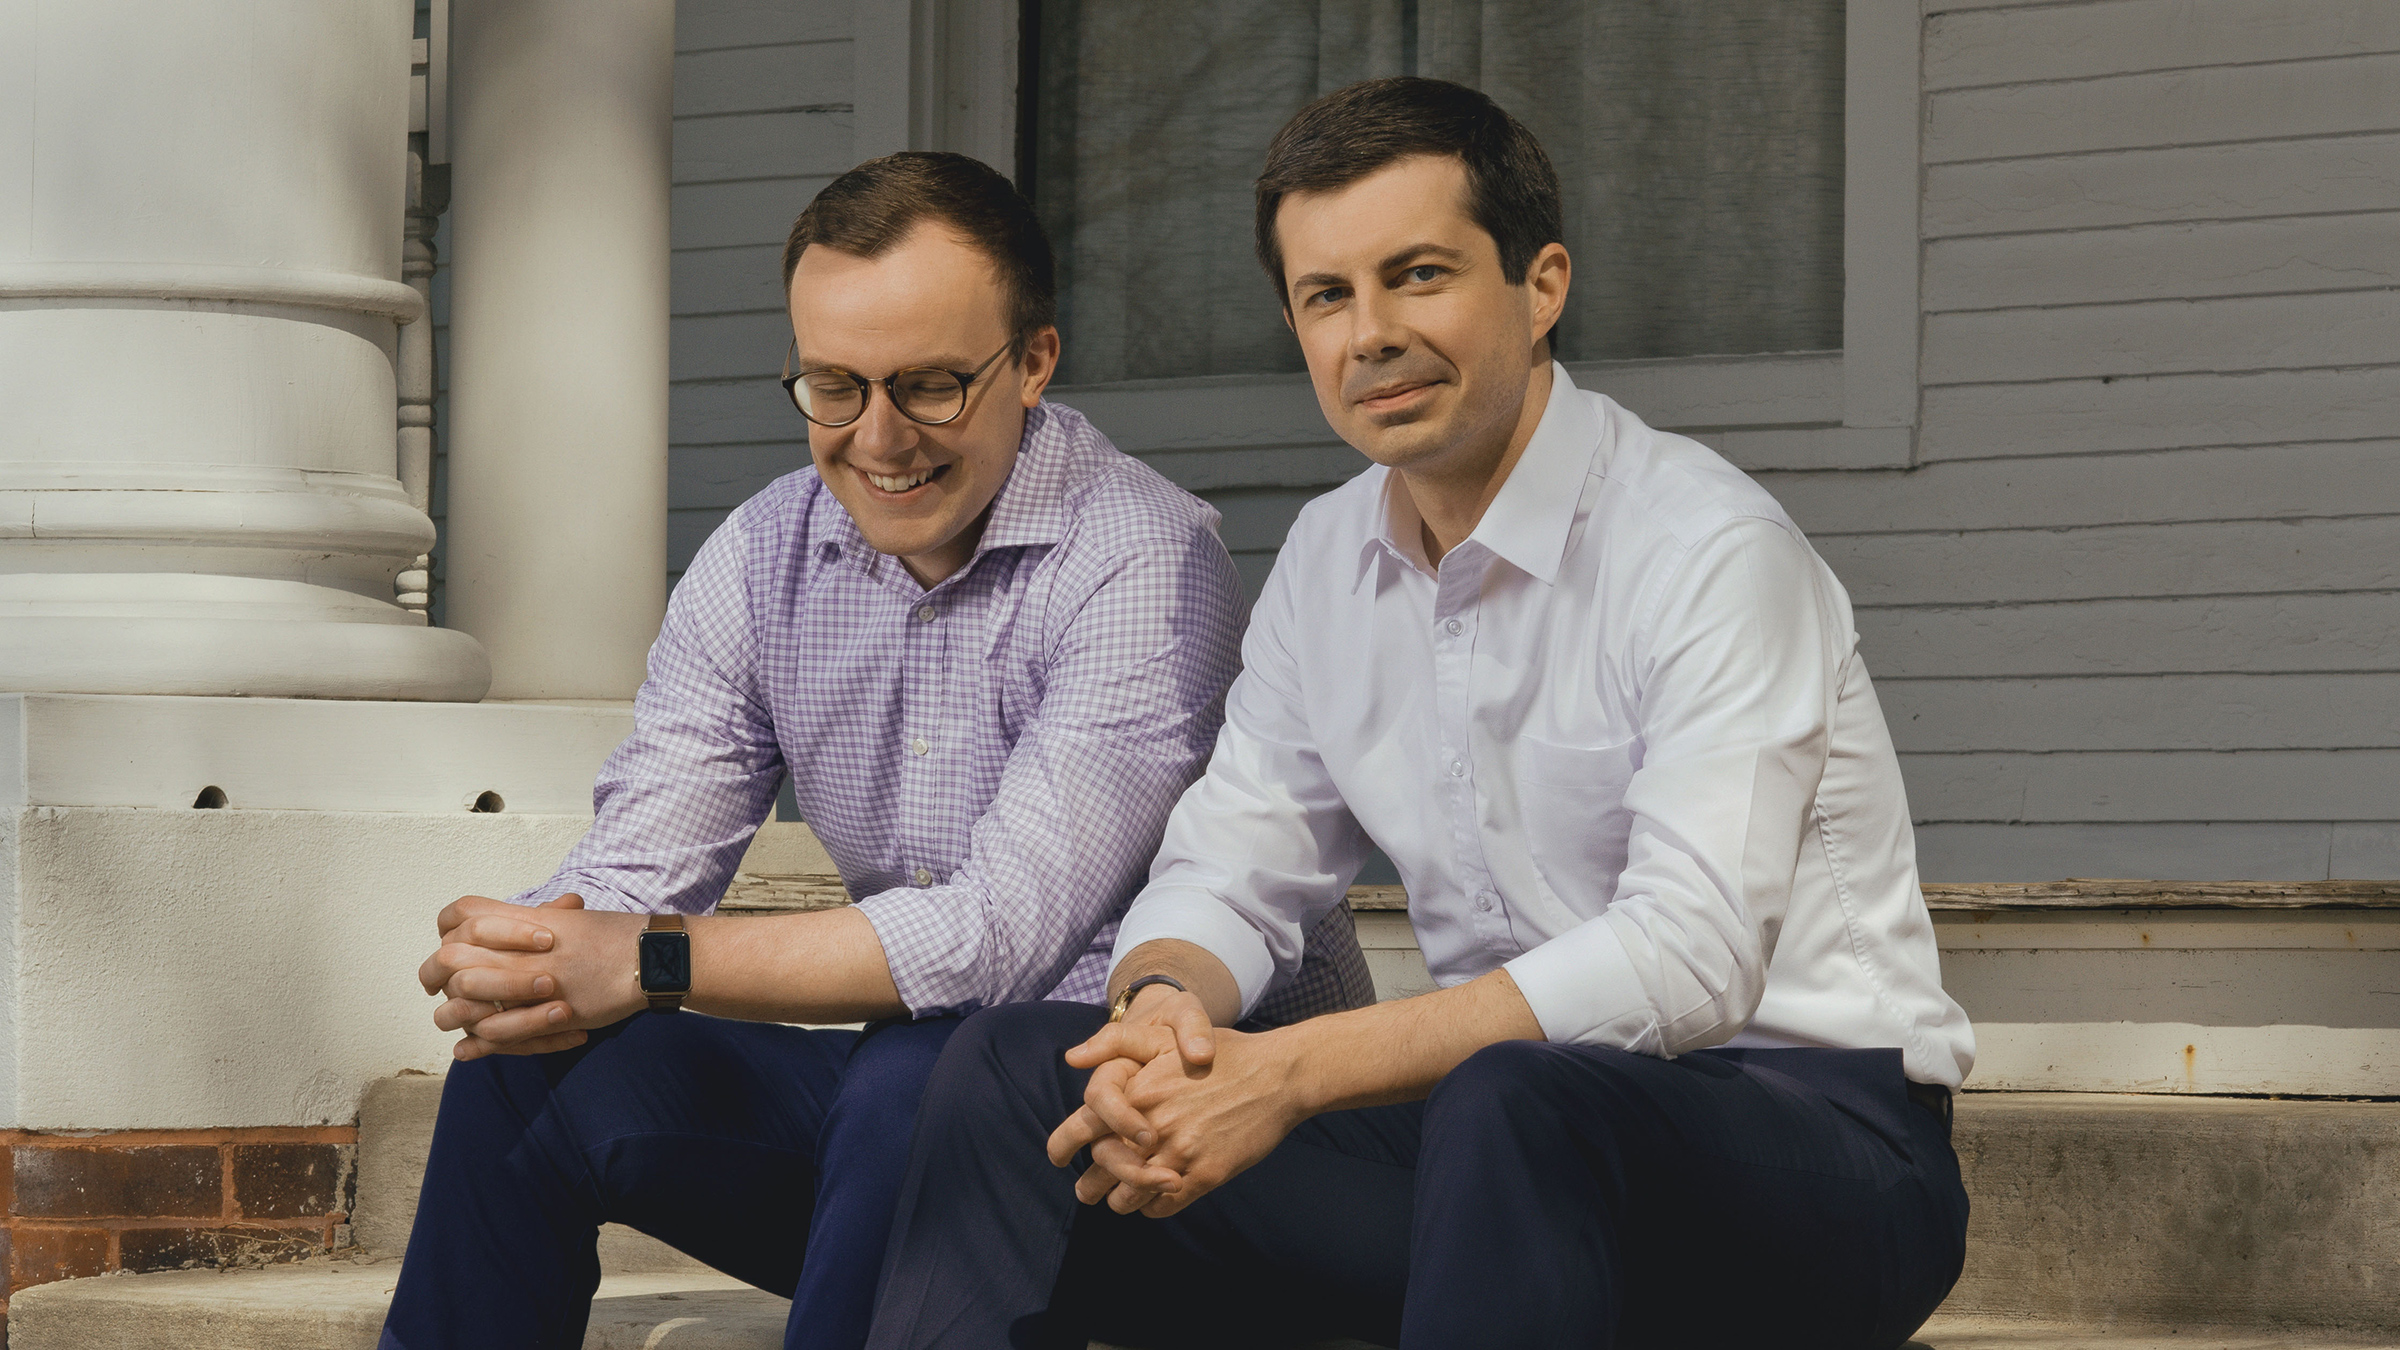 Chasten Glezman and Mayor Pete Buttigieg on the front steps of their home in South Bend, Ind.